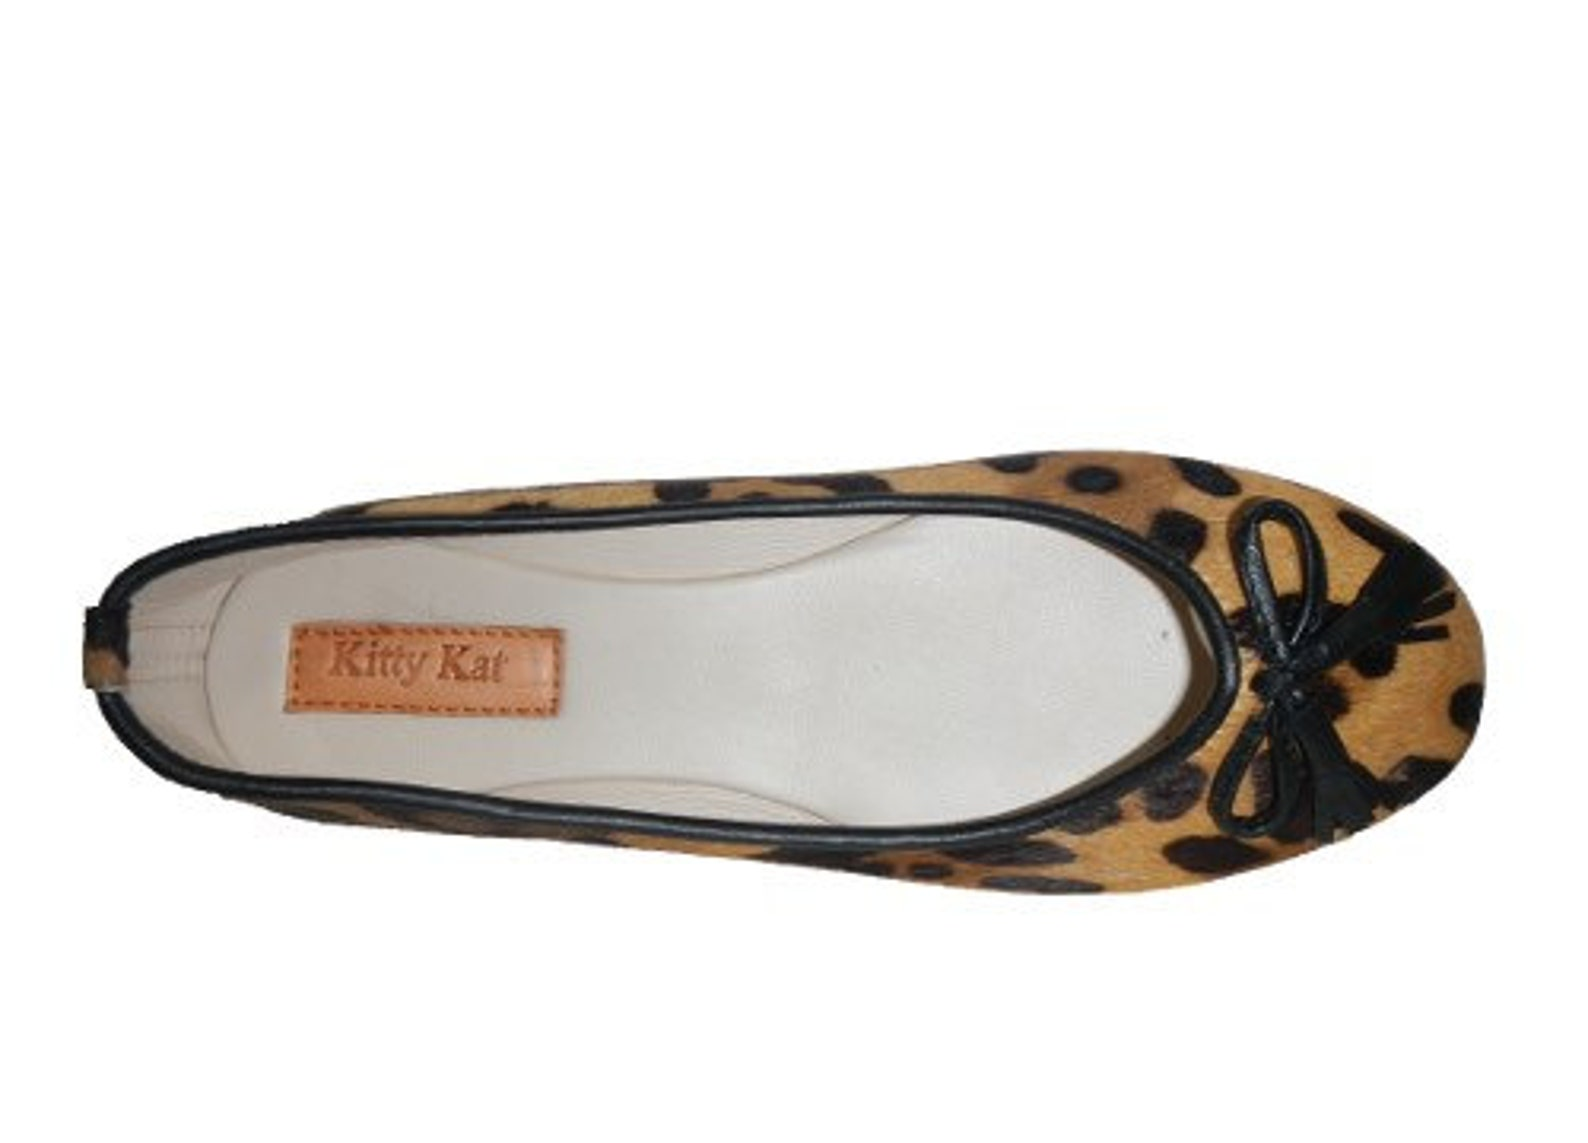 ponyskin ballet shoes, leopard print ballet flats, ponyskin and genuine leather ballet shoes. last pair